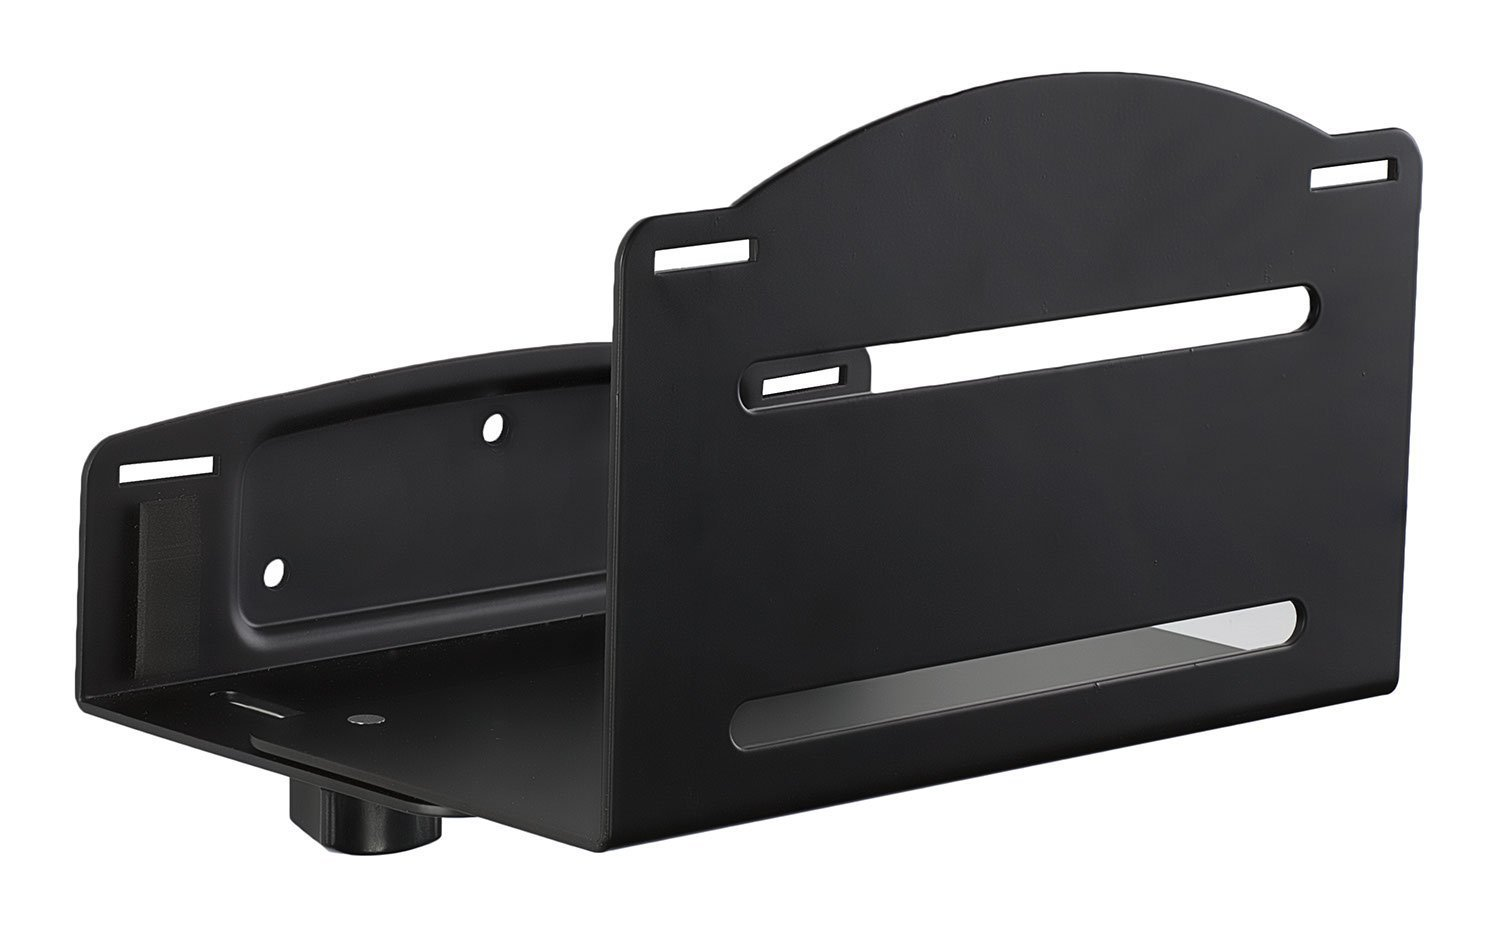 Mount-It! Heavy Duty CPU Wall Mount Bracket, Size Adjustable CPU Holder, Supports up to 22 Pounds, Saves Floor and Desk Space